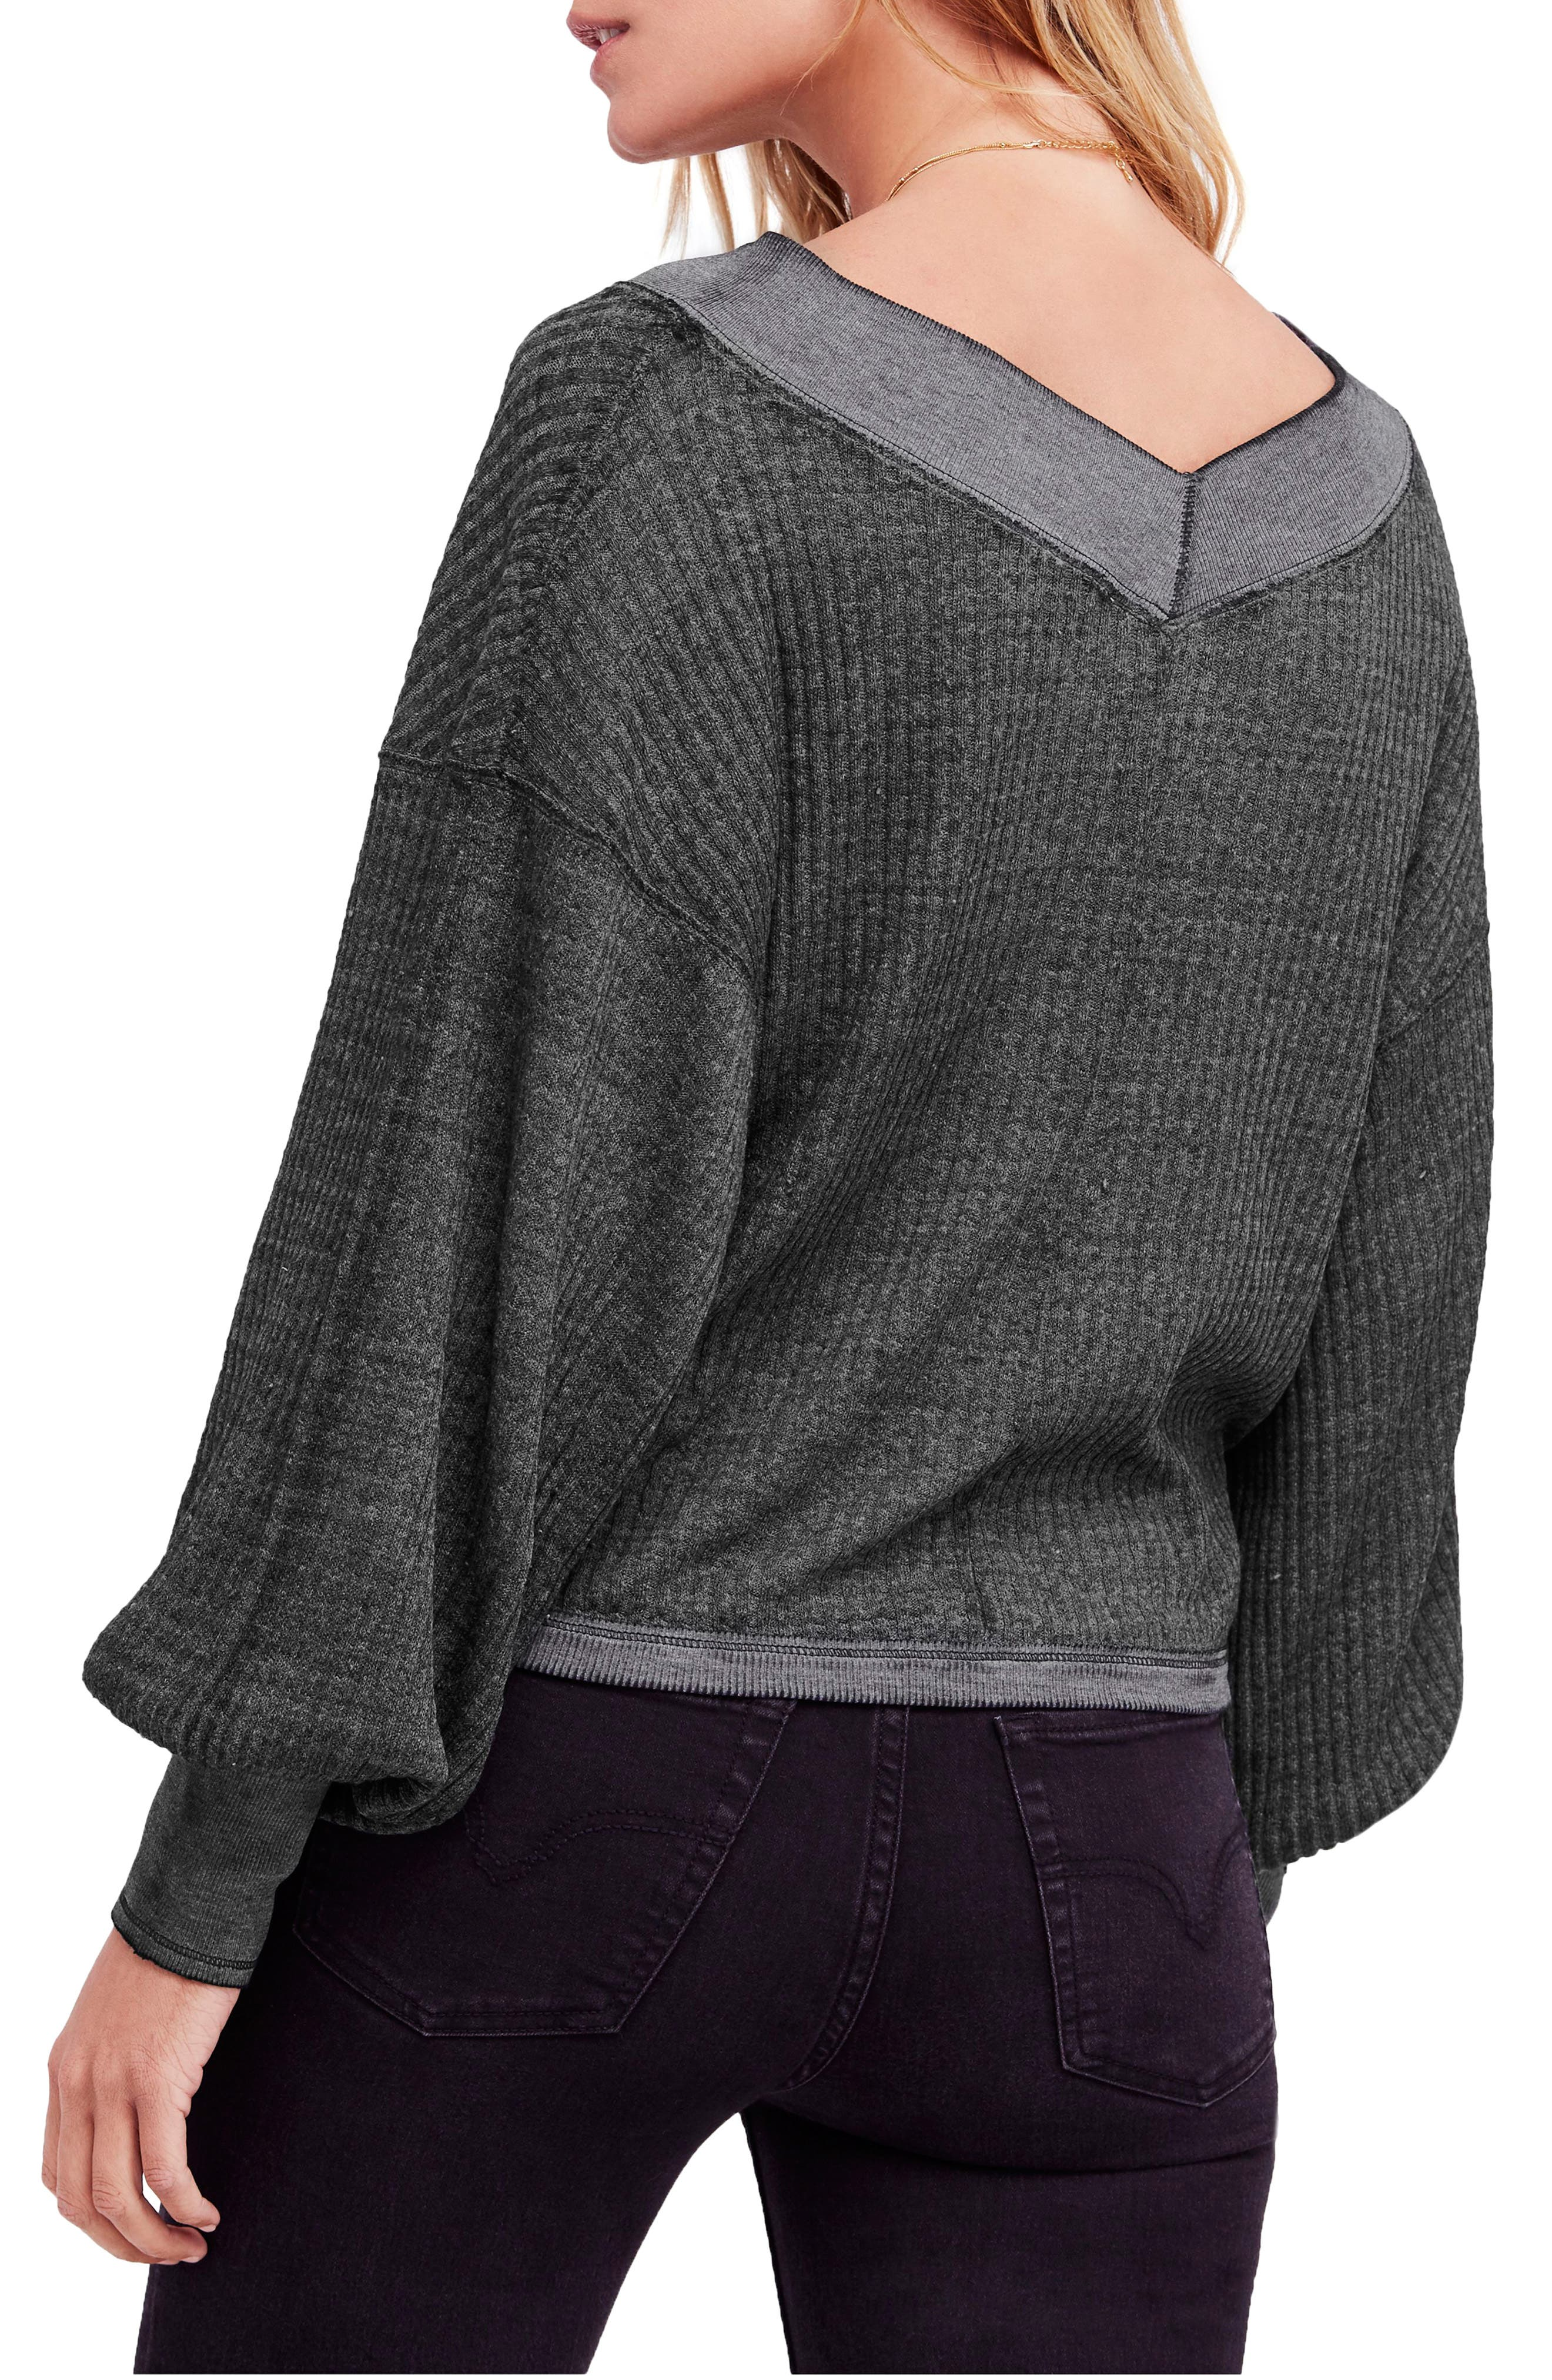 FREE PEOPLE, We the Free by Free People South Side Thermal Top, Alternate thumbnail 2, color, BLACK